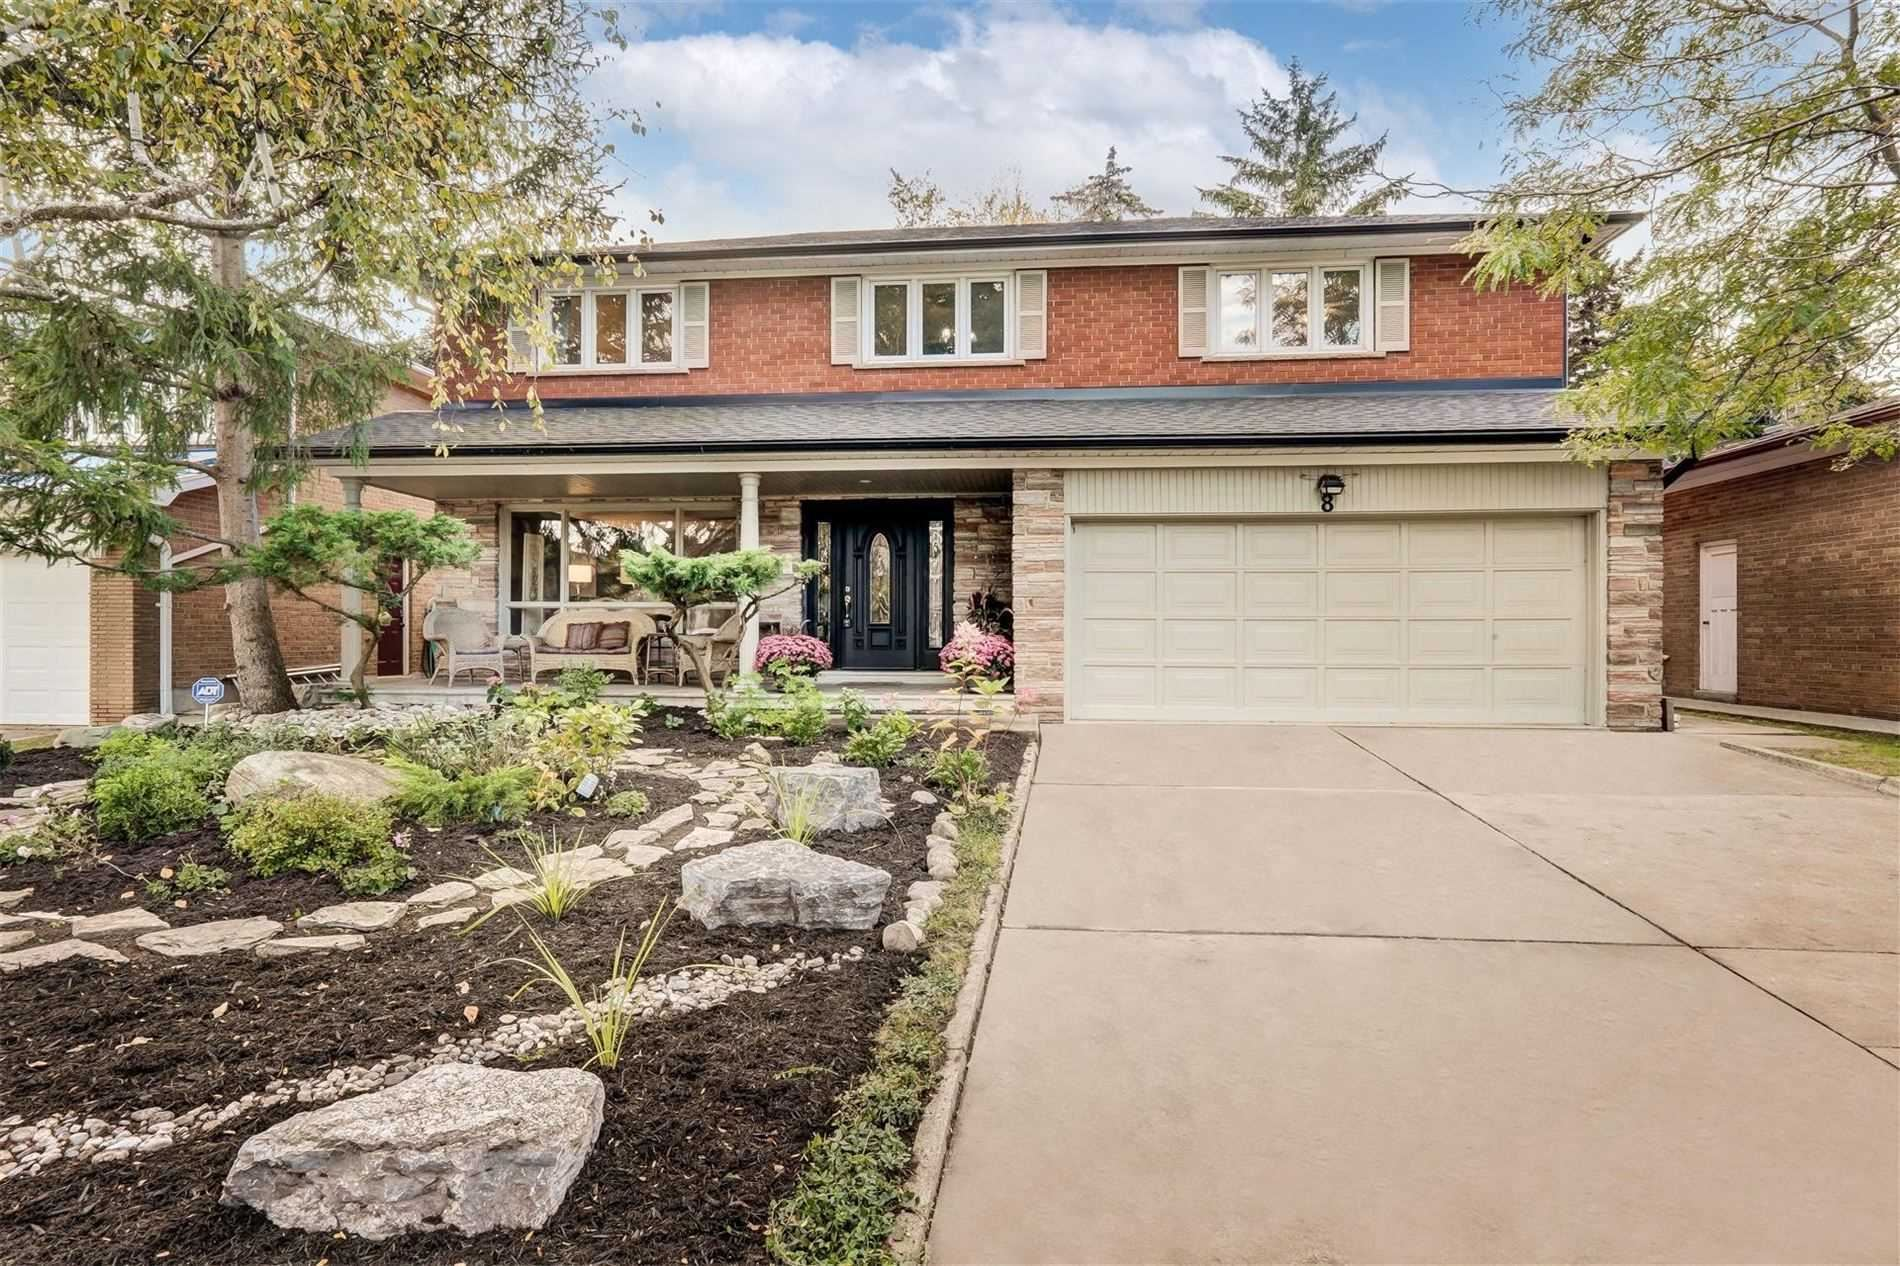 8 Bosworth Ave, Toronto, ON M9A4T5 - MLS#: W5408583